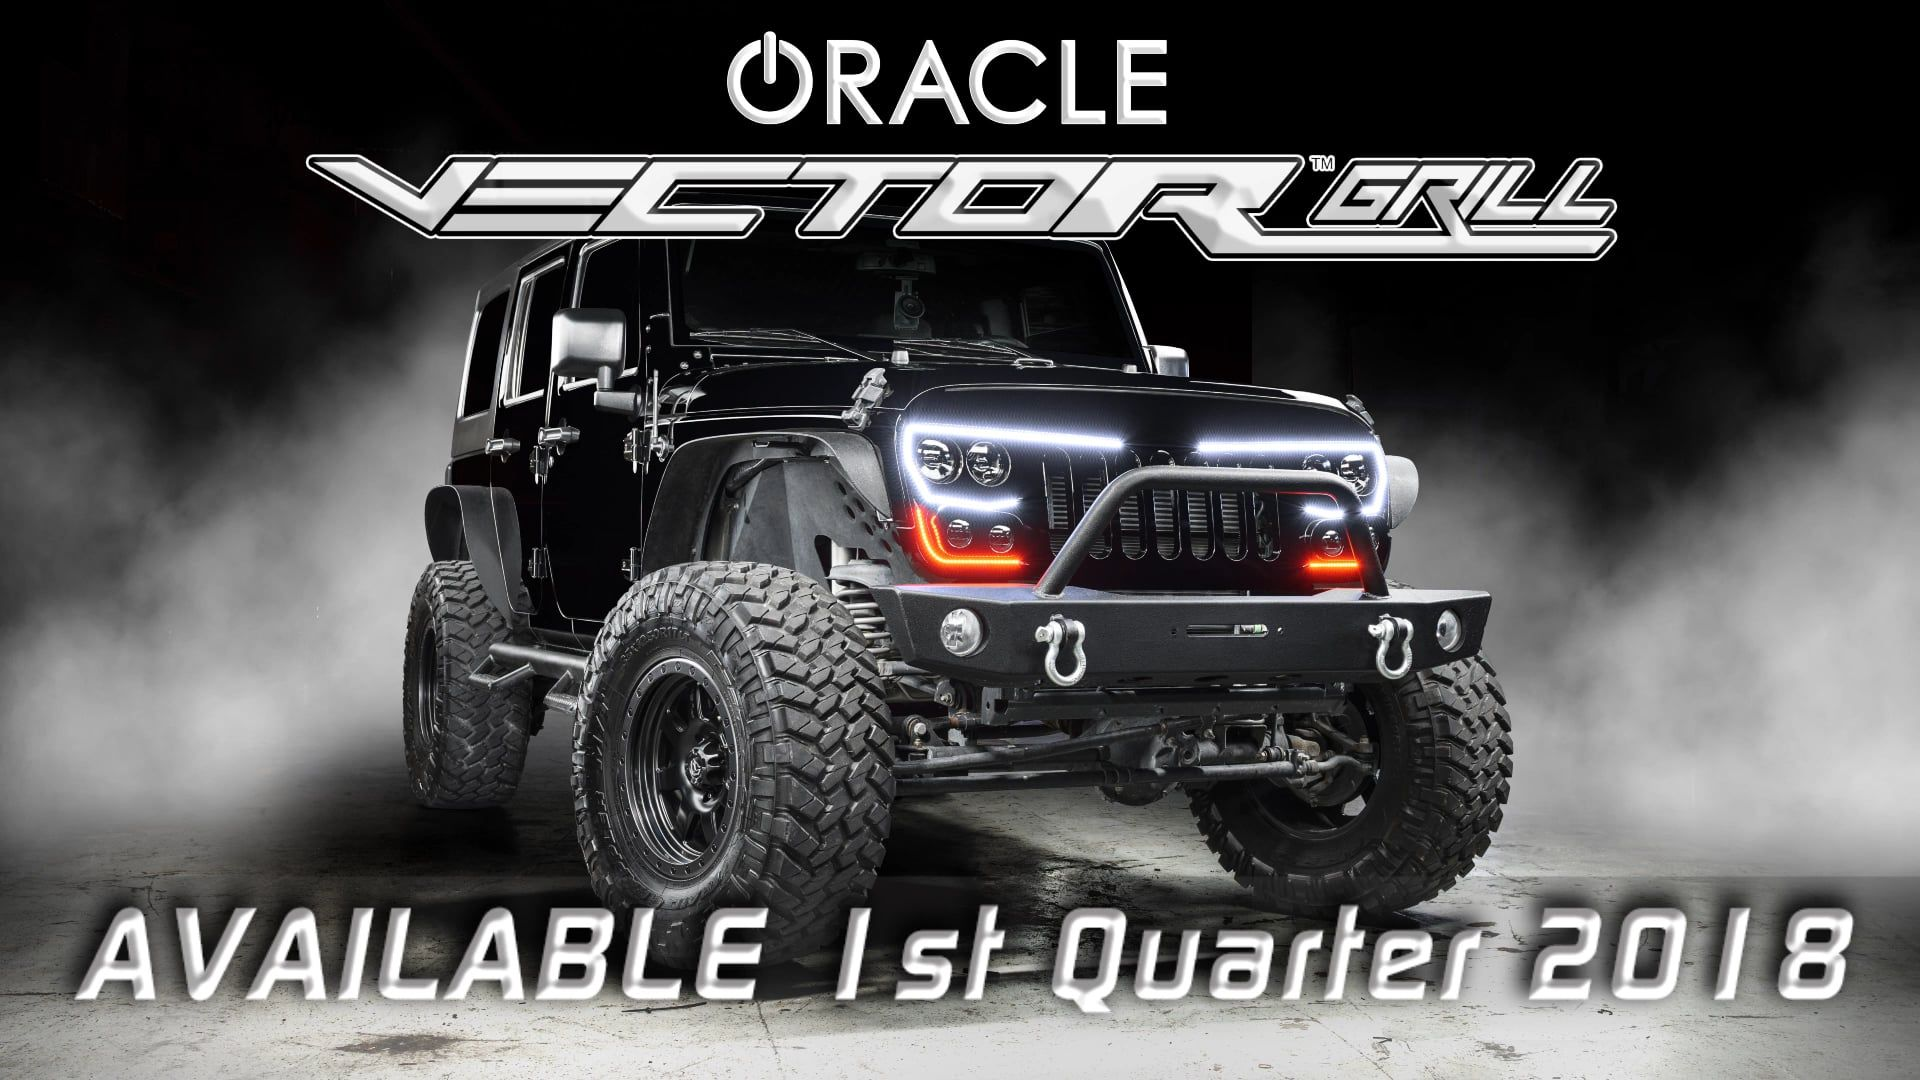 Oracle Jeep Vector Grill Promo Jeep Wrangler Jeep Wrangler Accessories Jeep Wrangler Jk